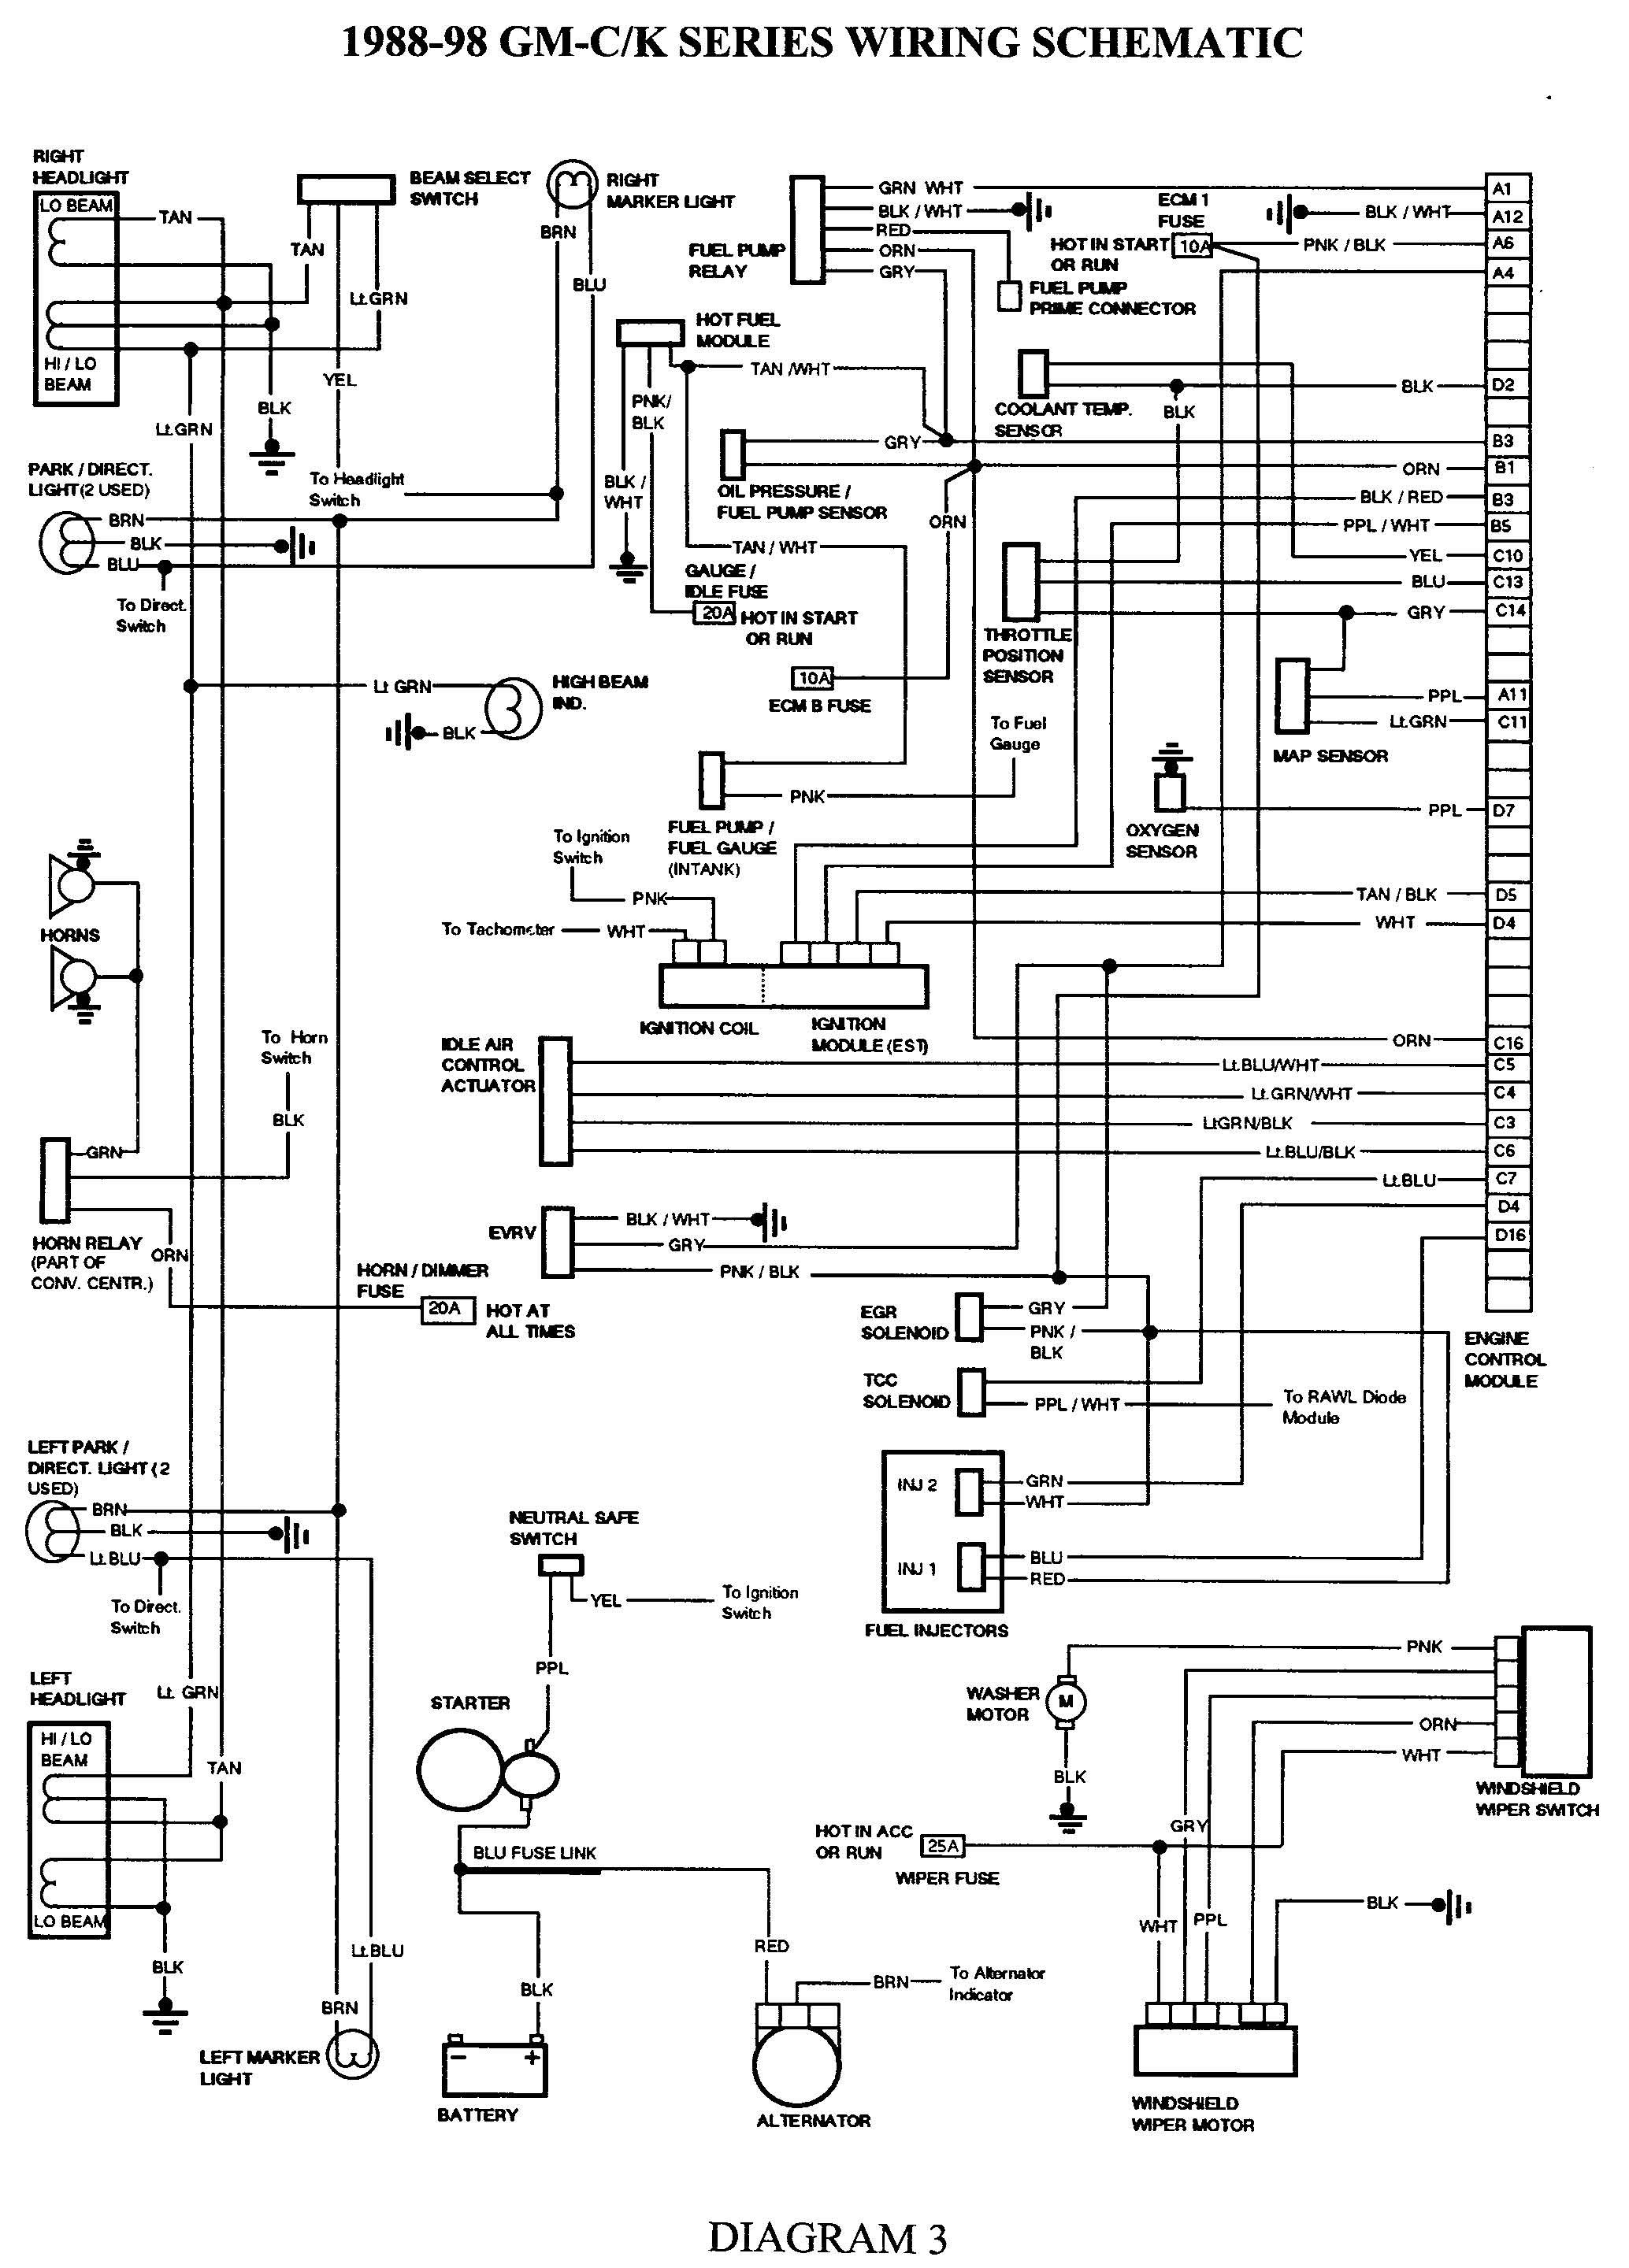 gmc wire diagram detailed schematics diagram rh keyplusrubber com 1999 gmc  safari fuse box diagram 1999 gmc jimmy fuse diagram